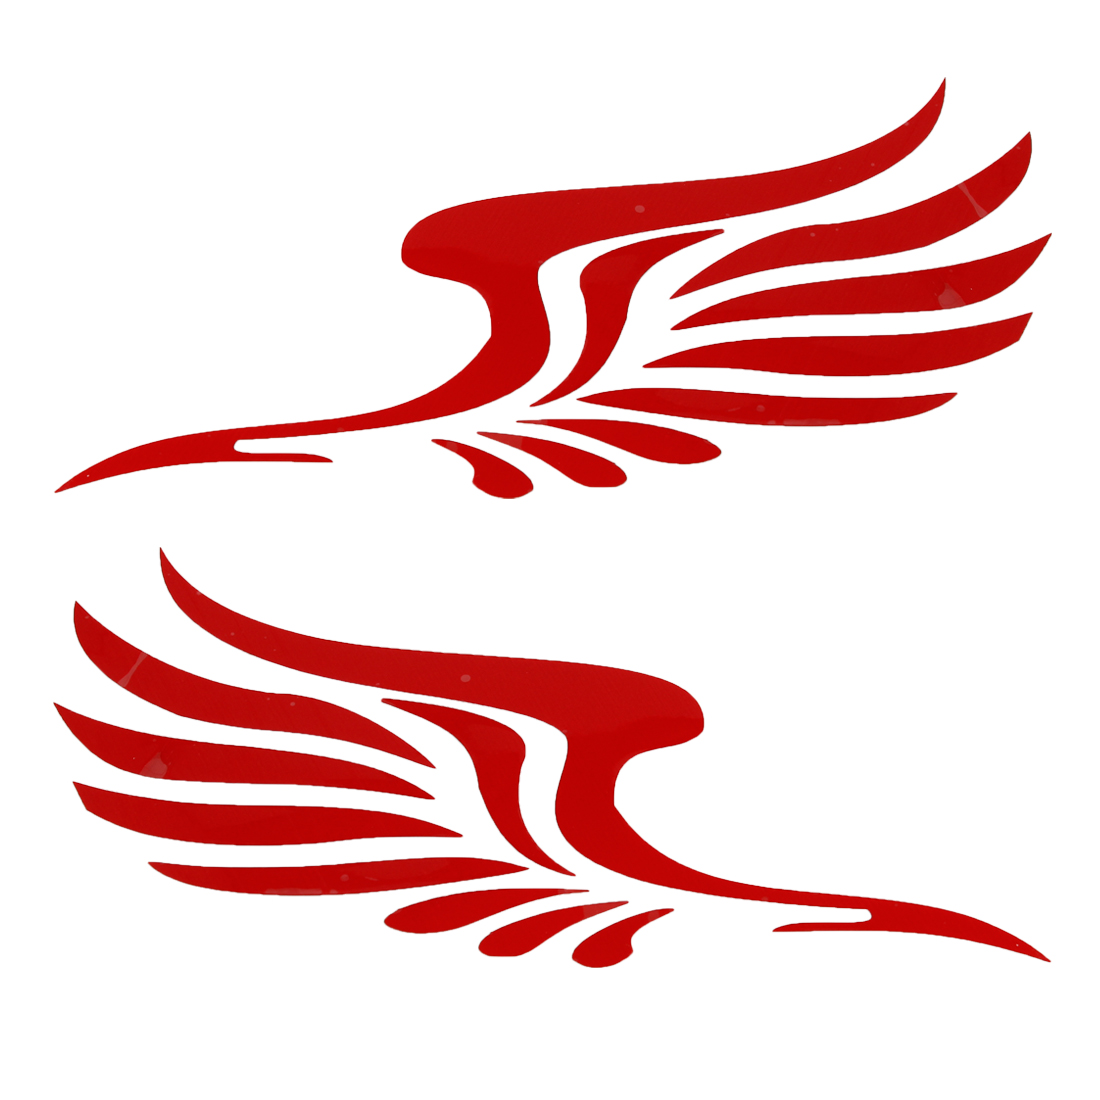 2PCS 15.5cm x 5cm Adhesive Back Red Feather Shape Decal for Auto Adorn